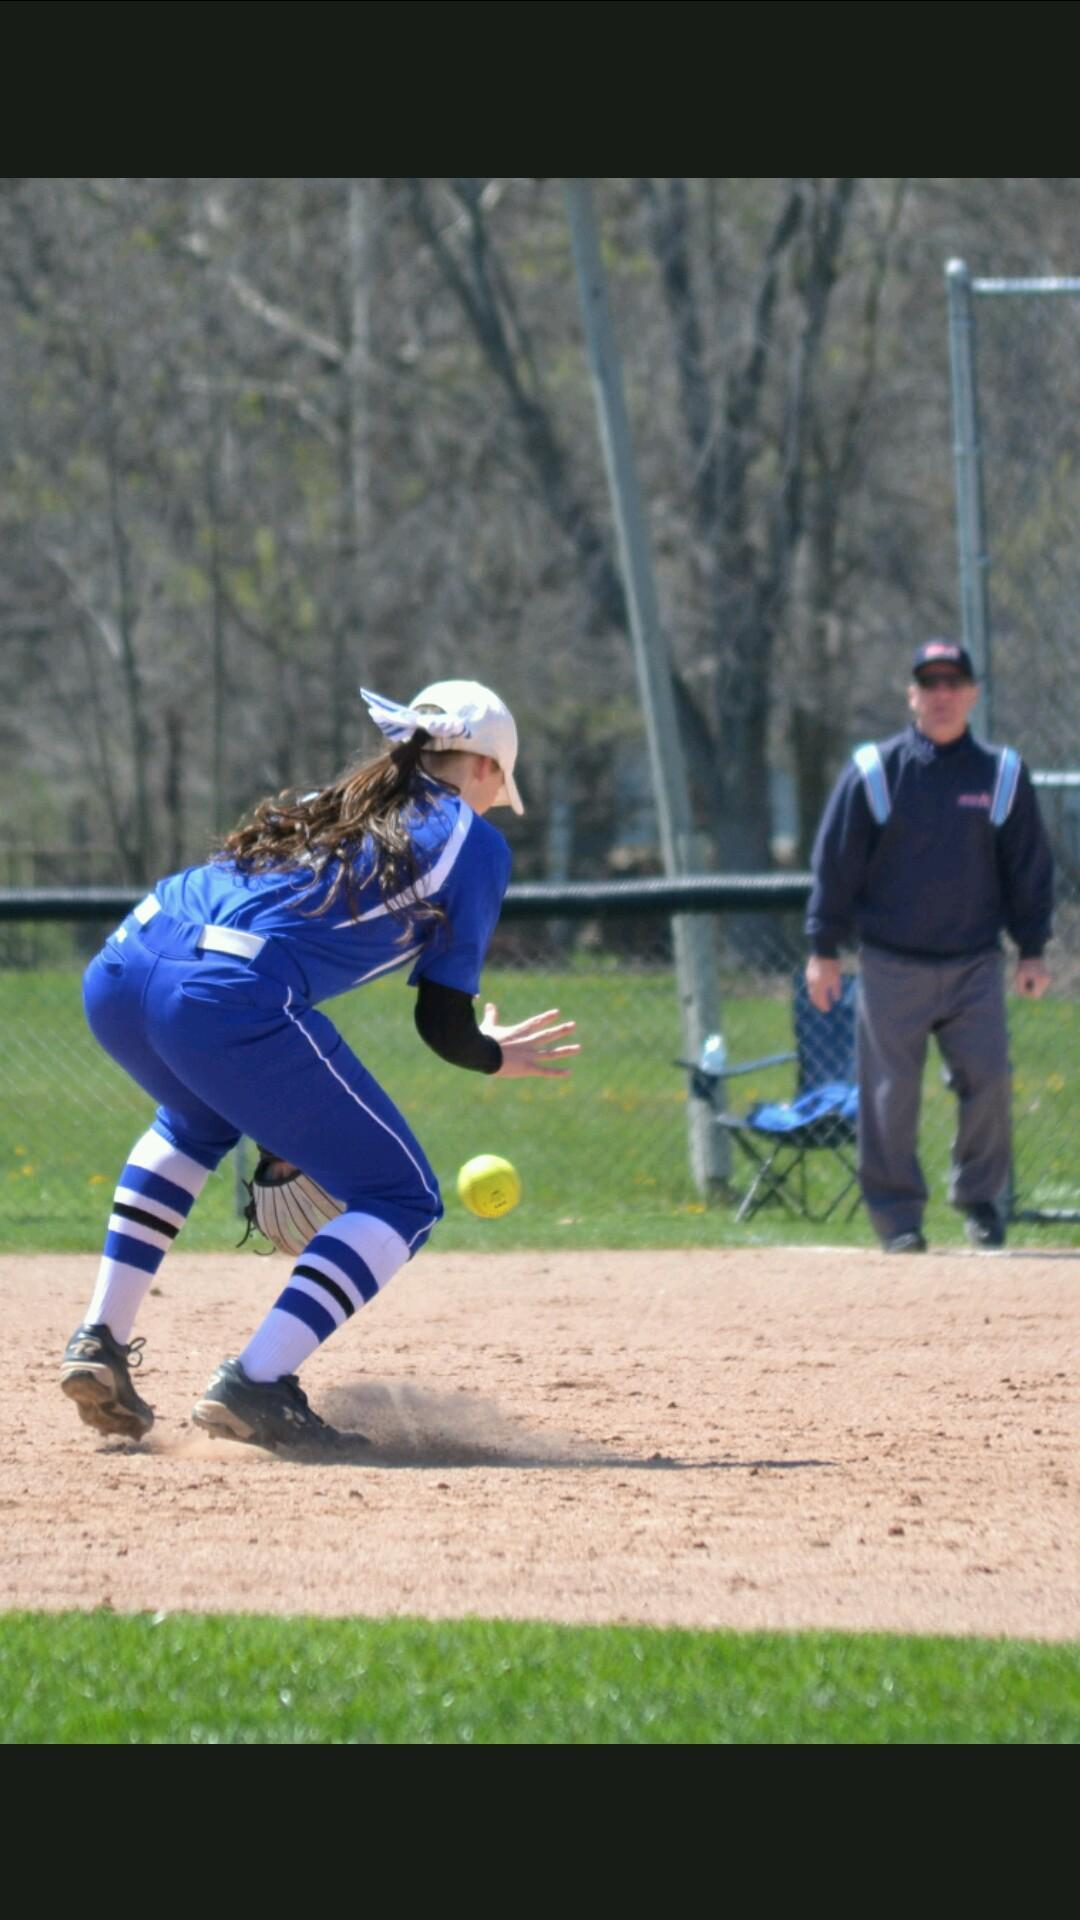 Myers pictured here catching a ball in the outfield. Photo courtesy of Rose Myers.